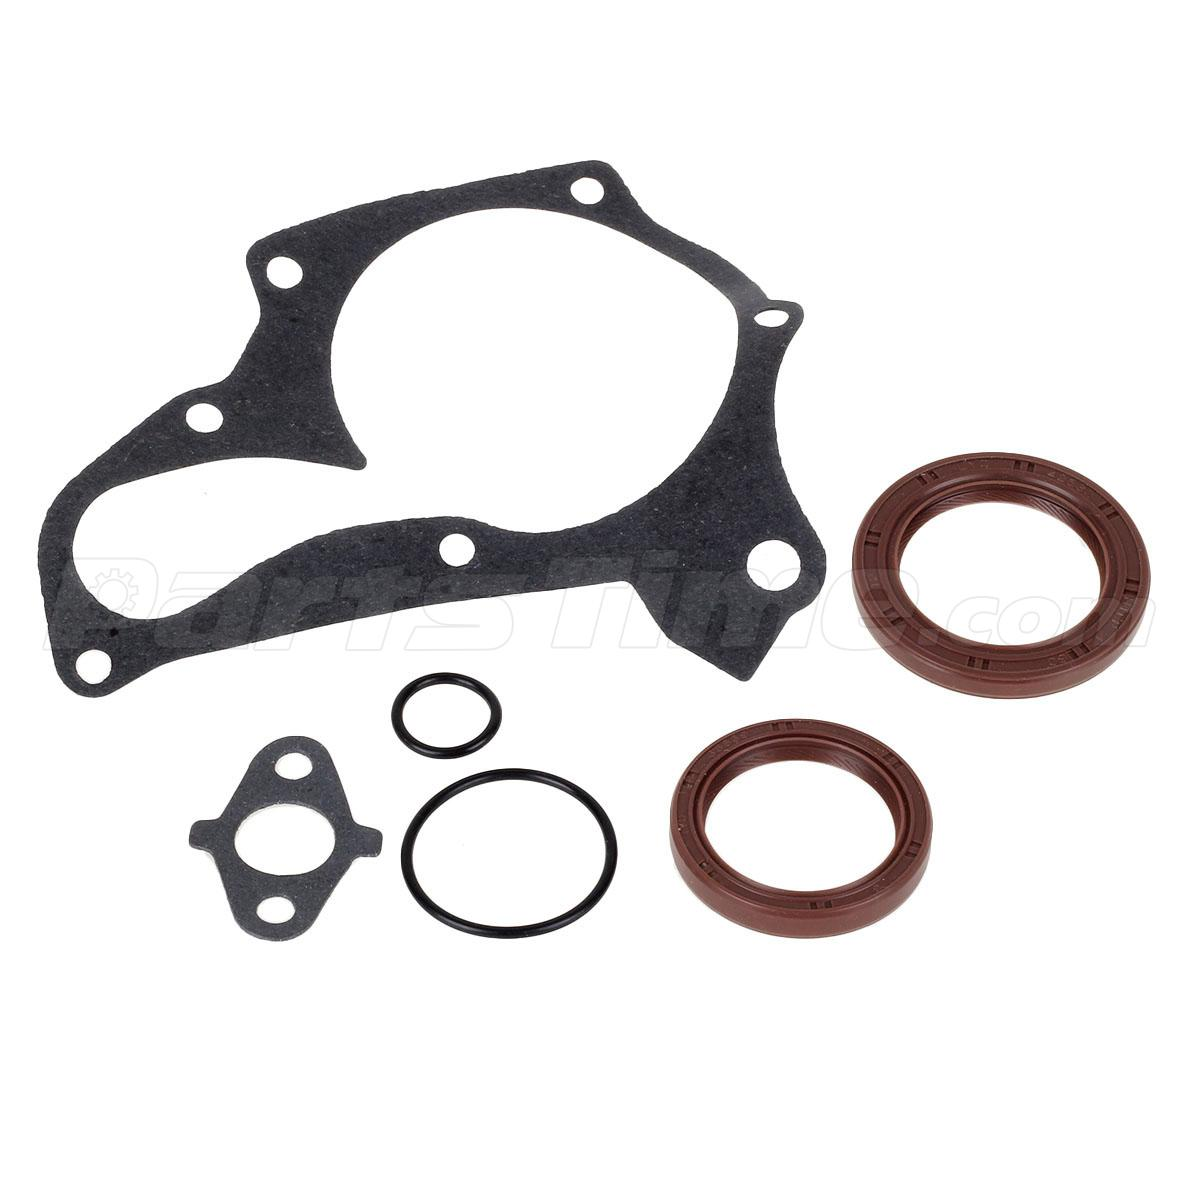 Toyota Camry Timing Belt Replacement: Timing Belt Water Pump Kit For Toyota Camry Celica Solara